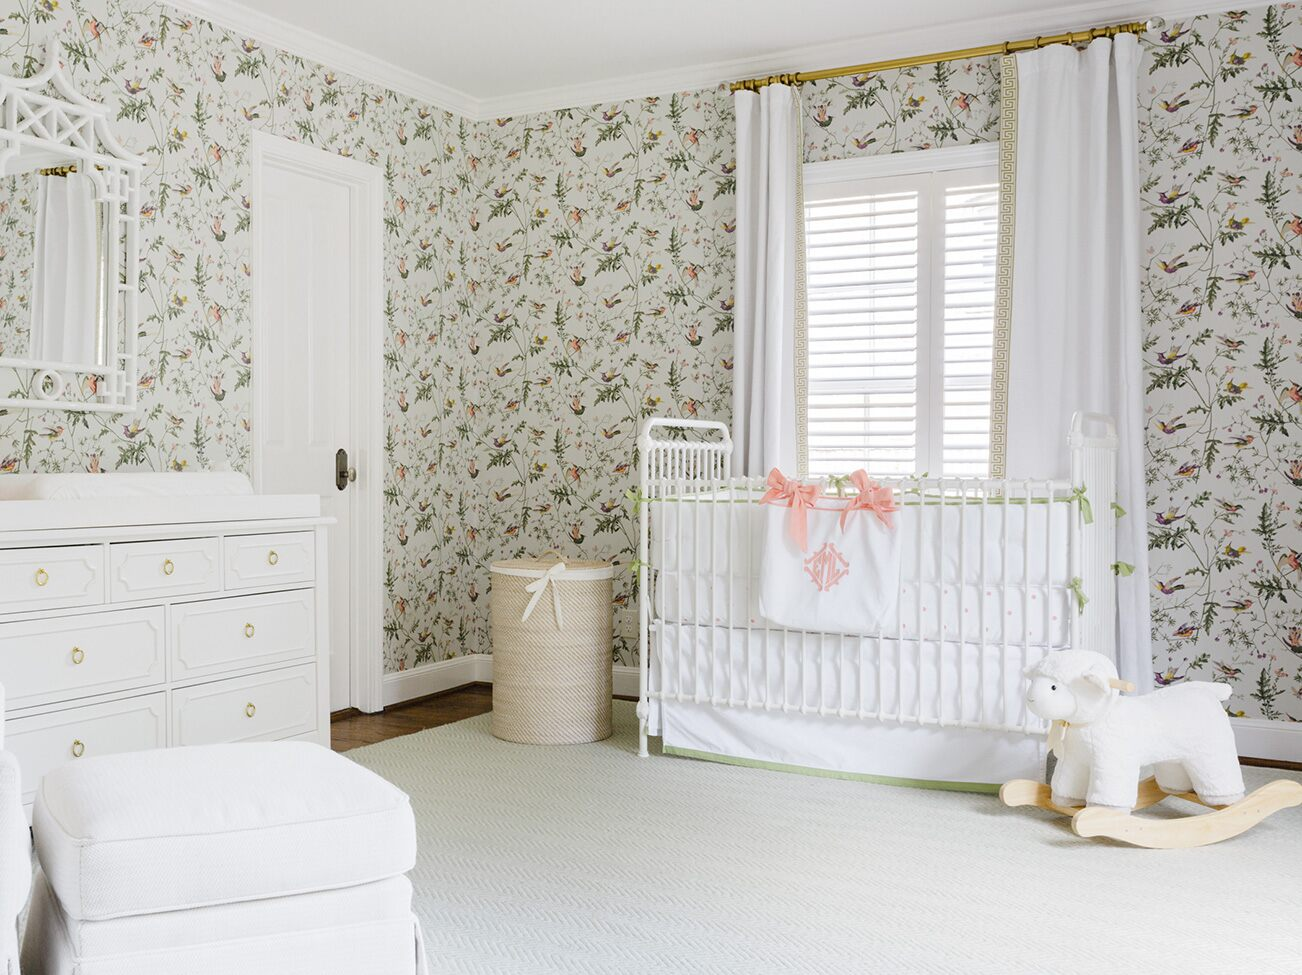 Cheery floral-papered nursery with floor-to-ceiling white drapes, white crib, dresser, chair, and white plush baby rocker.